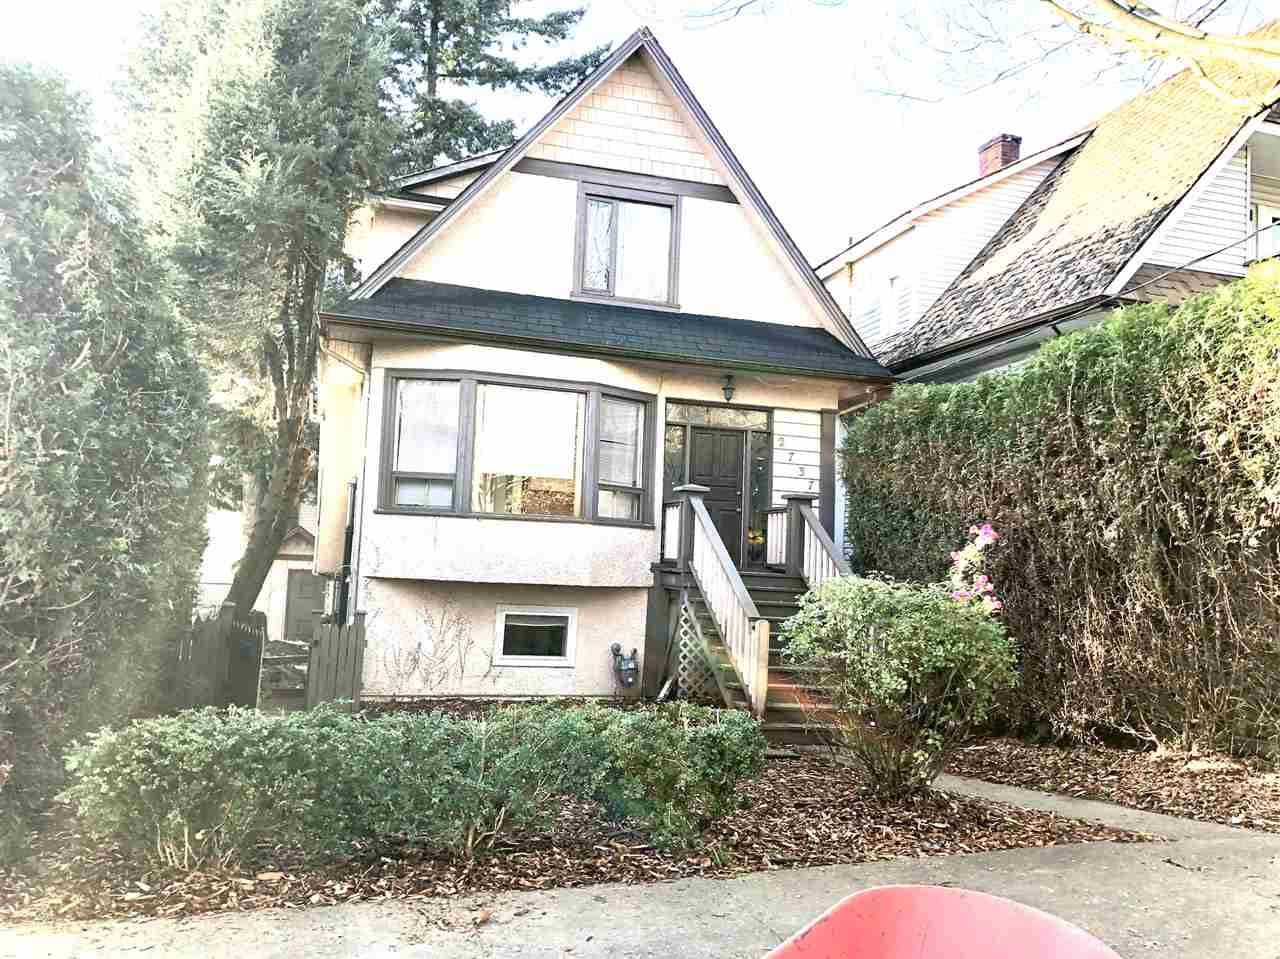 Main Photo: 2735 2737 WOODLAND Drive in Vancouver: Grandview Woodland Duplex for sale (Vancouver East)  : MLS®# R2431658